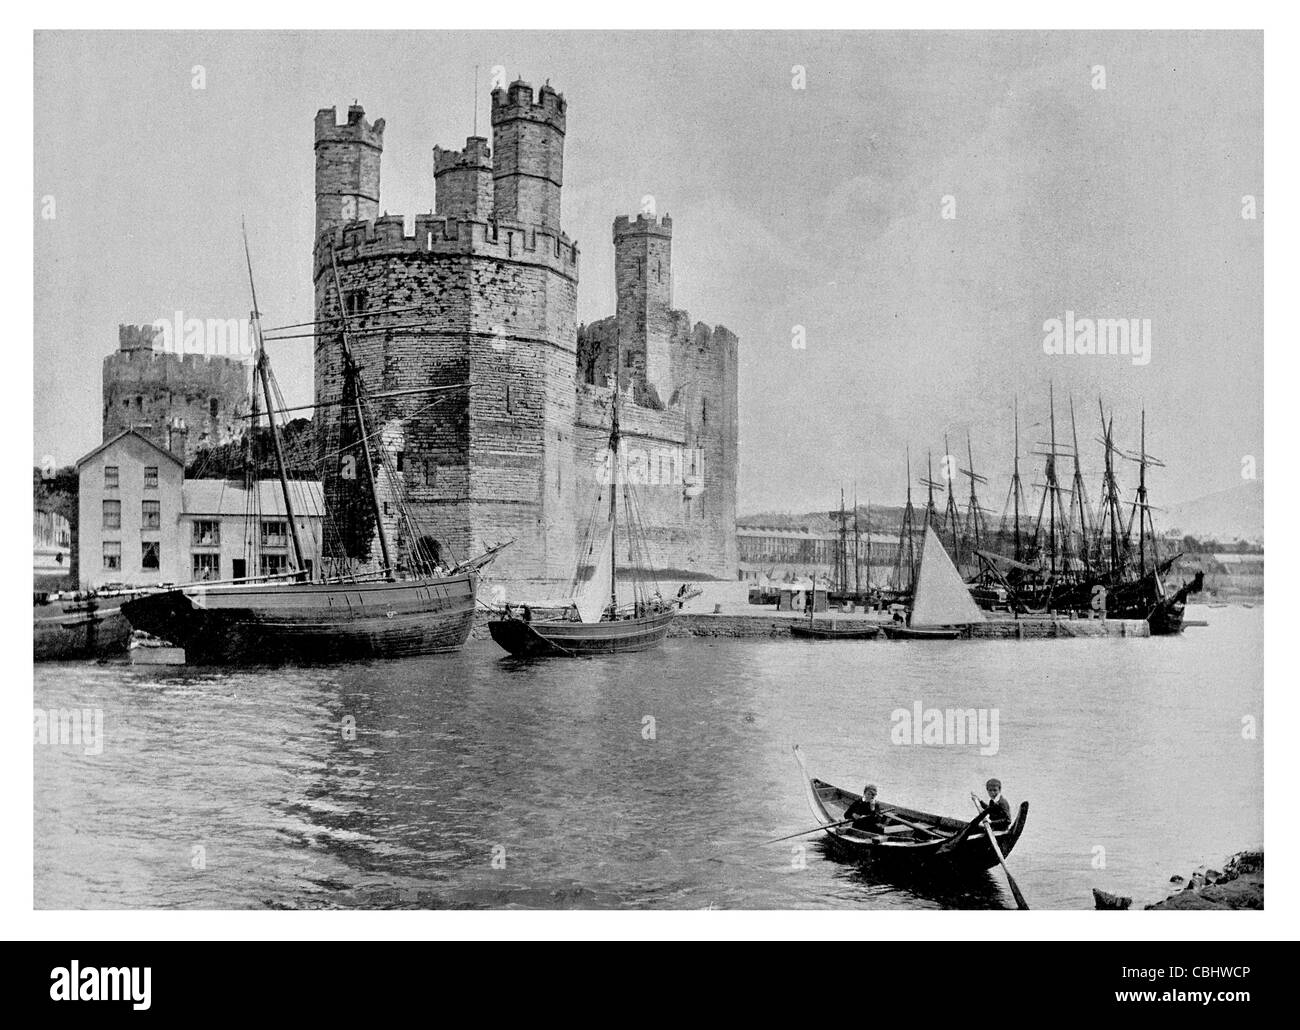 Caernarfon Castle medieval Gwynedd Wales town curtain walls fort fortification bastion tower chateau stronghold - Stock Image